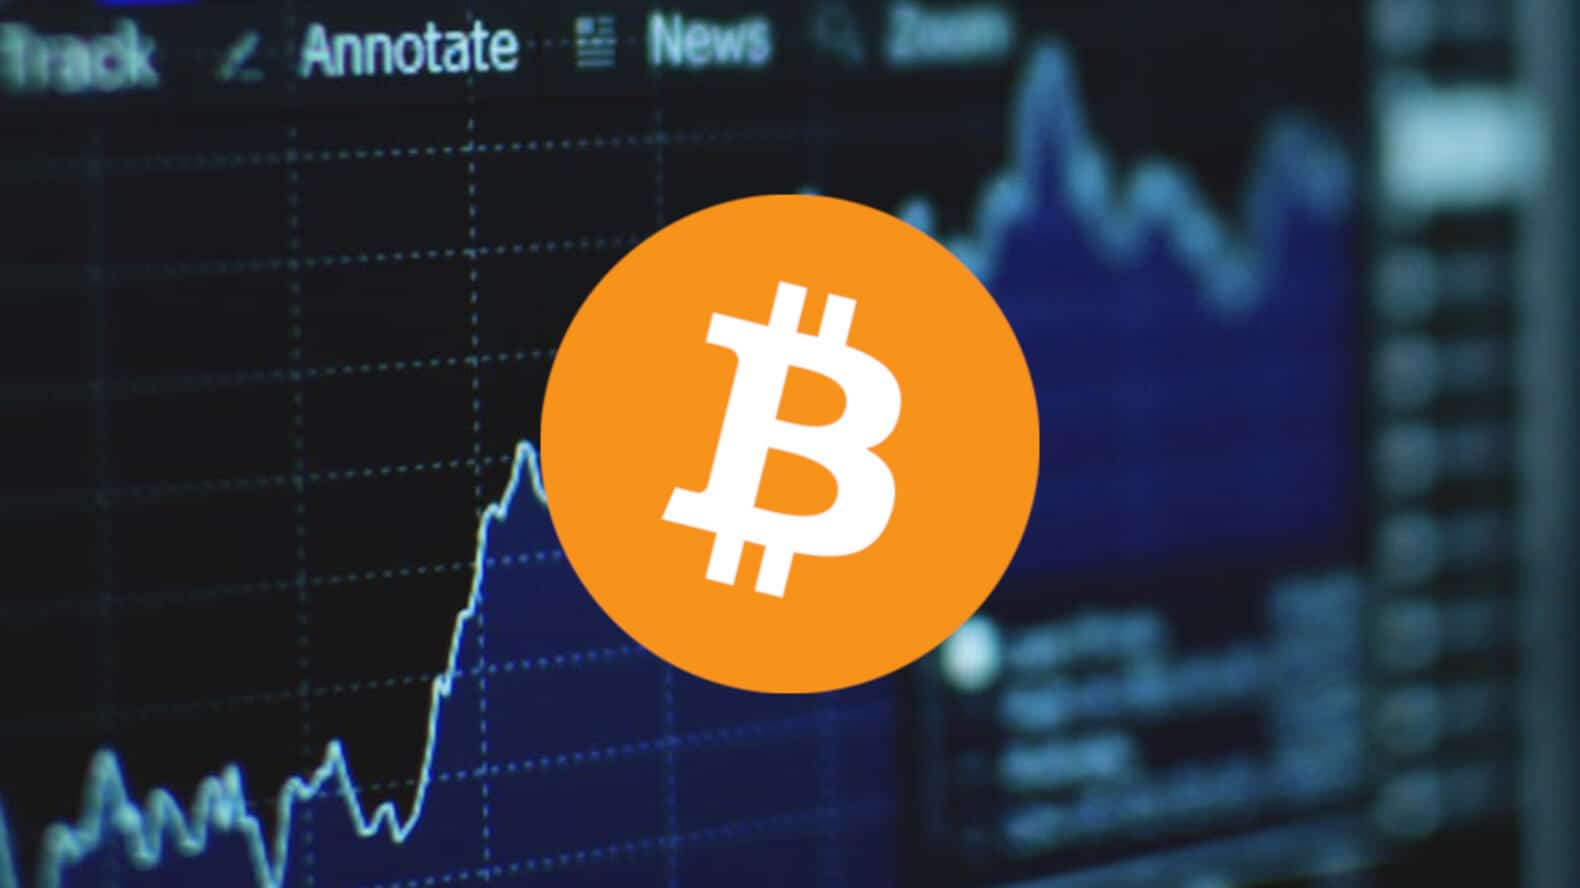 Bitcoin Price Analysis March 21